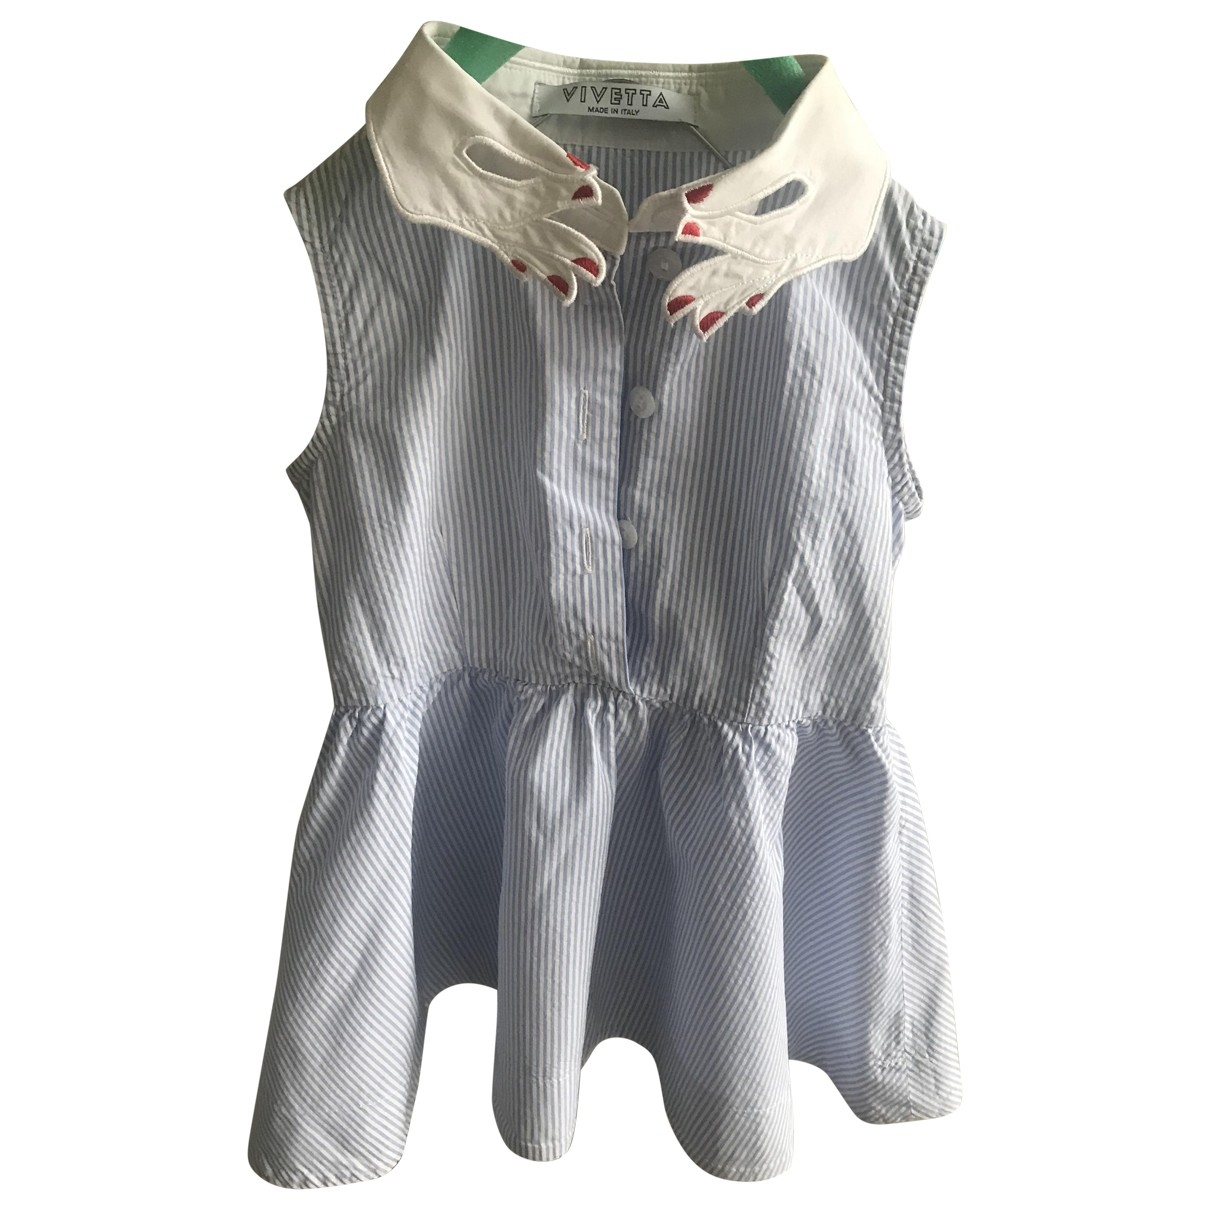 Vivetta \N Cotton dress for Kids 18 months - until 32 inches UK